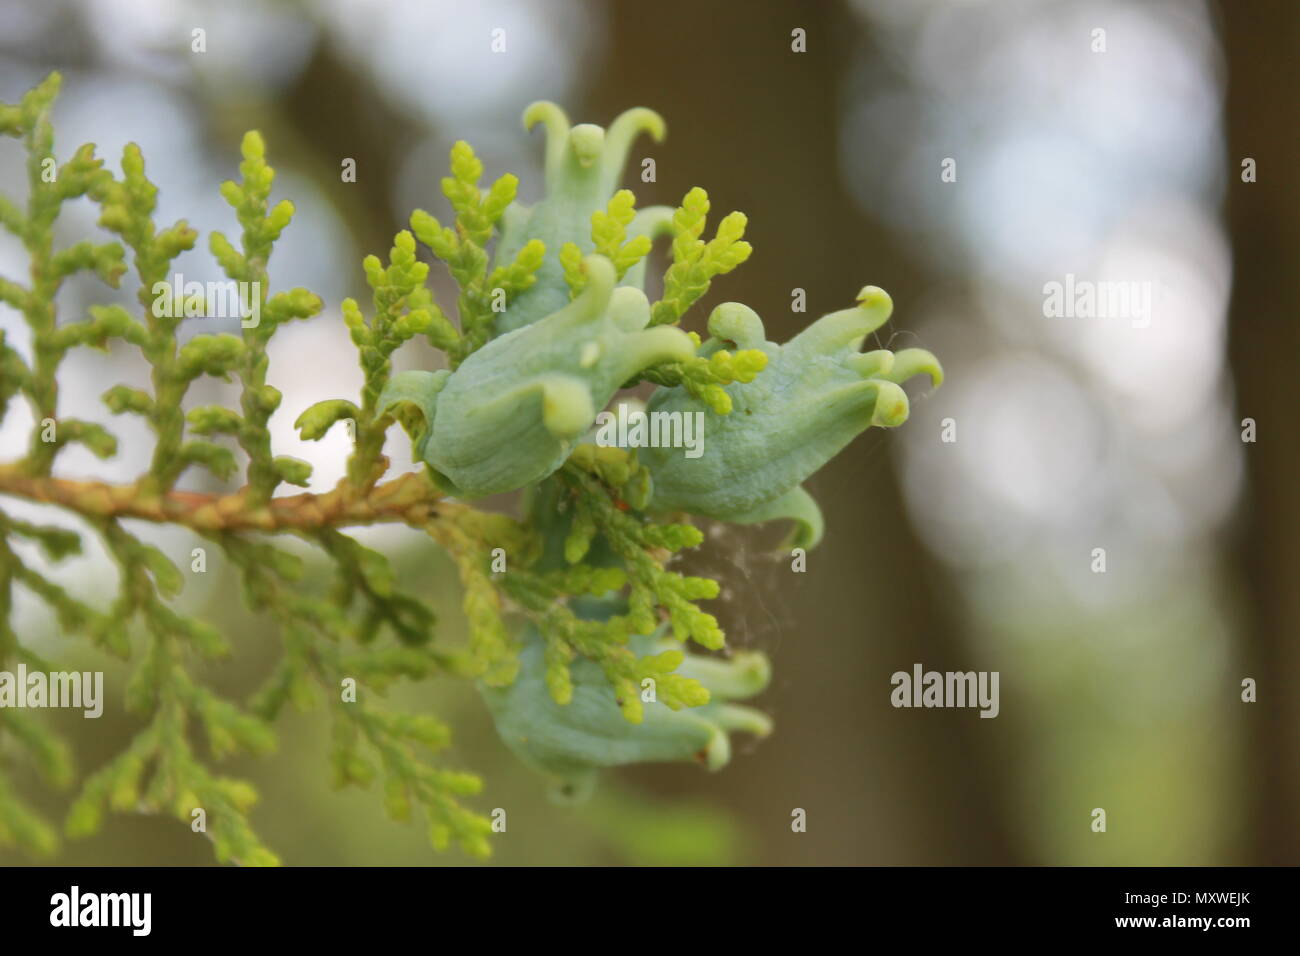 White cedar tree fruit on the end of a branch. - Stock Image